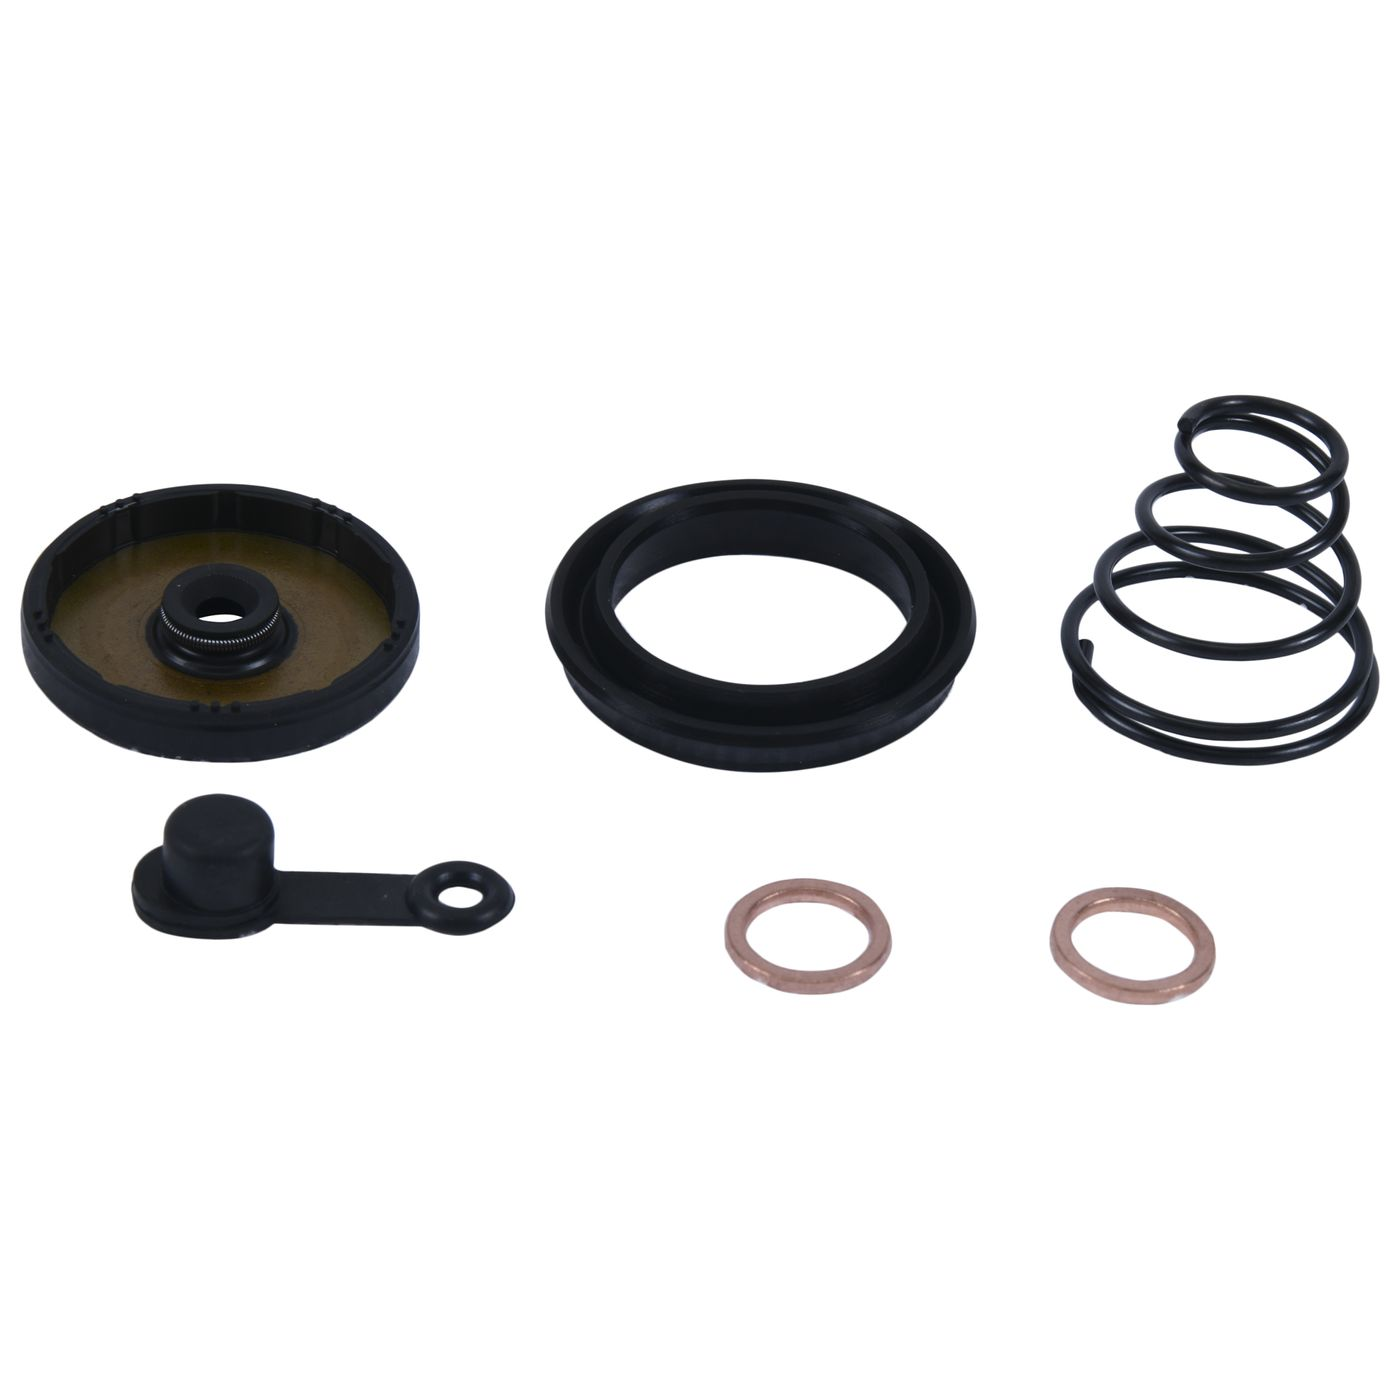 Wrp Clutch Slave Cylinder Kits - WRP186025 image